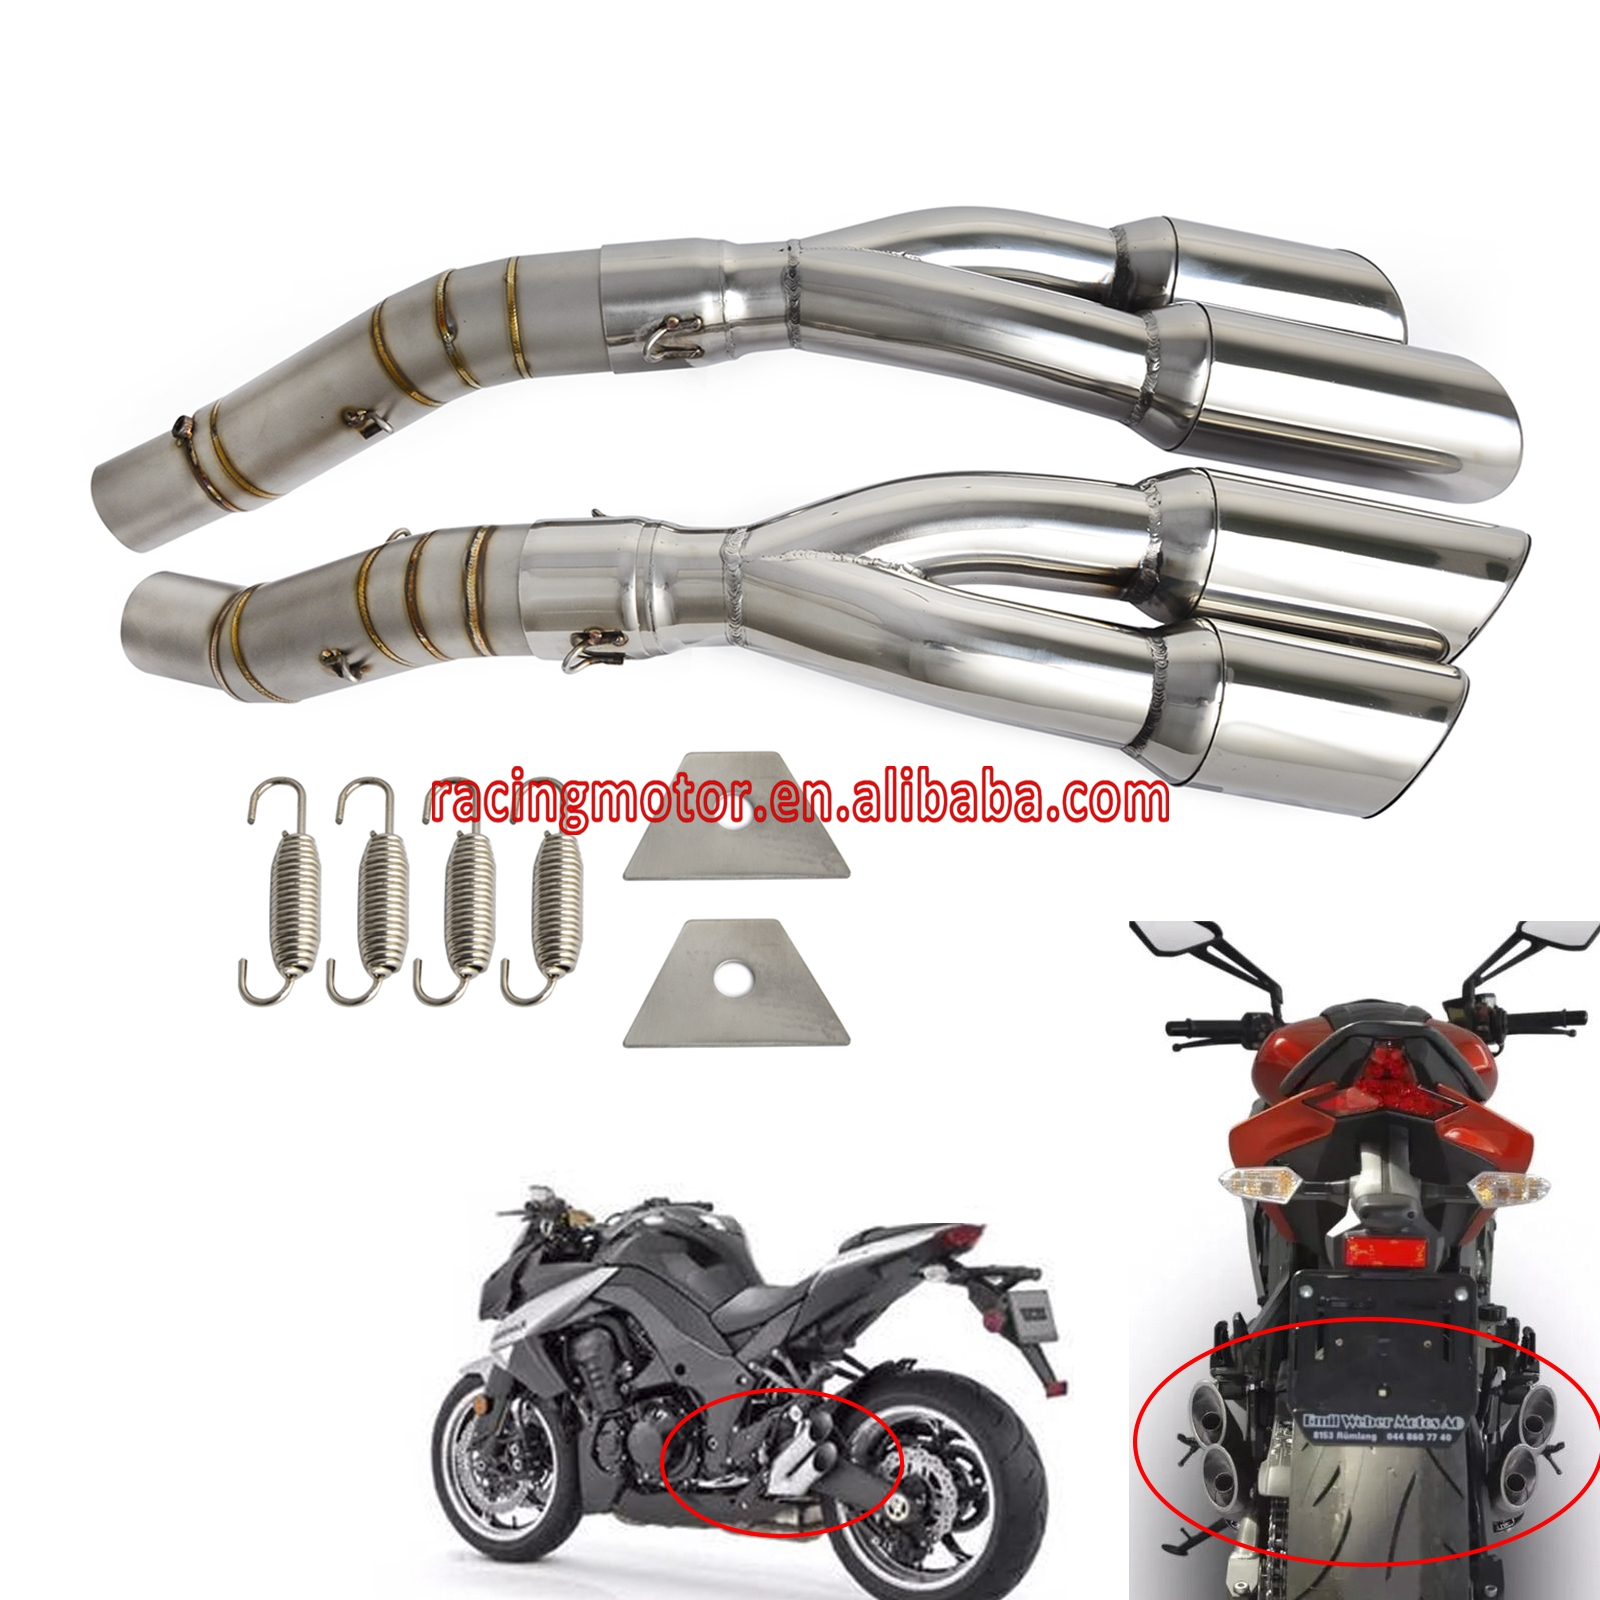 NICECNC Motorcycle Exhaust Pipe for Kawasaki Z1000 2010 2011 2012 2013 2014 2015 2016 Z 1000 Muffler & Mid Pipe Exhaust System цена